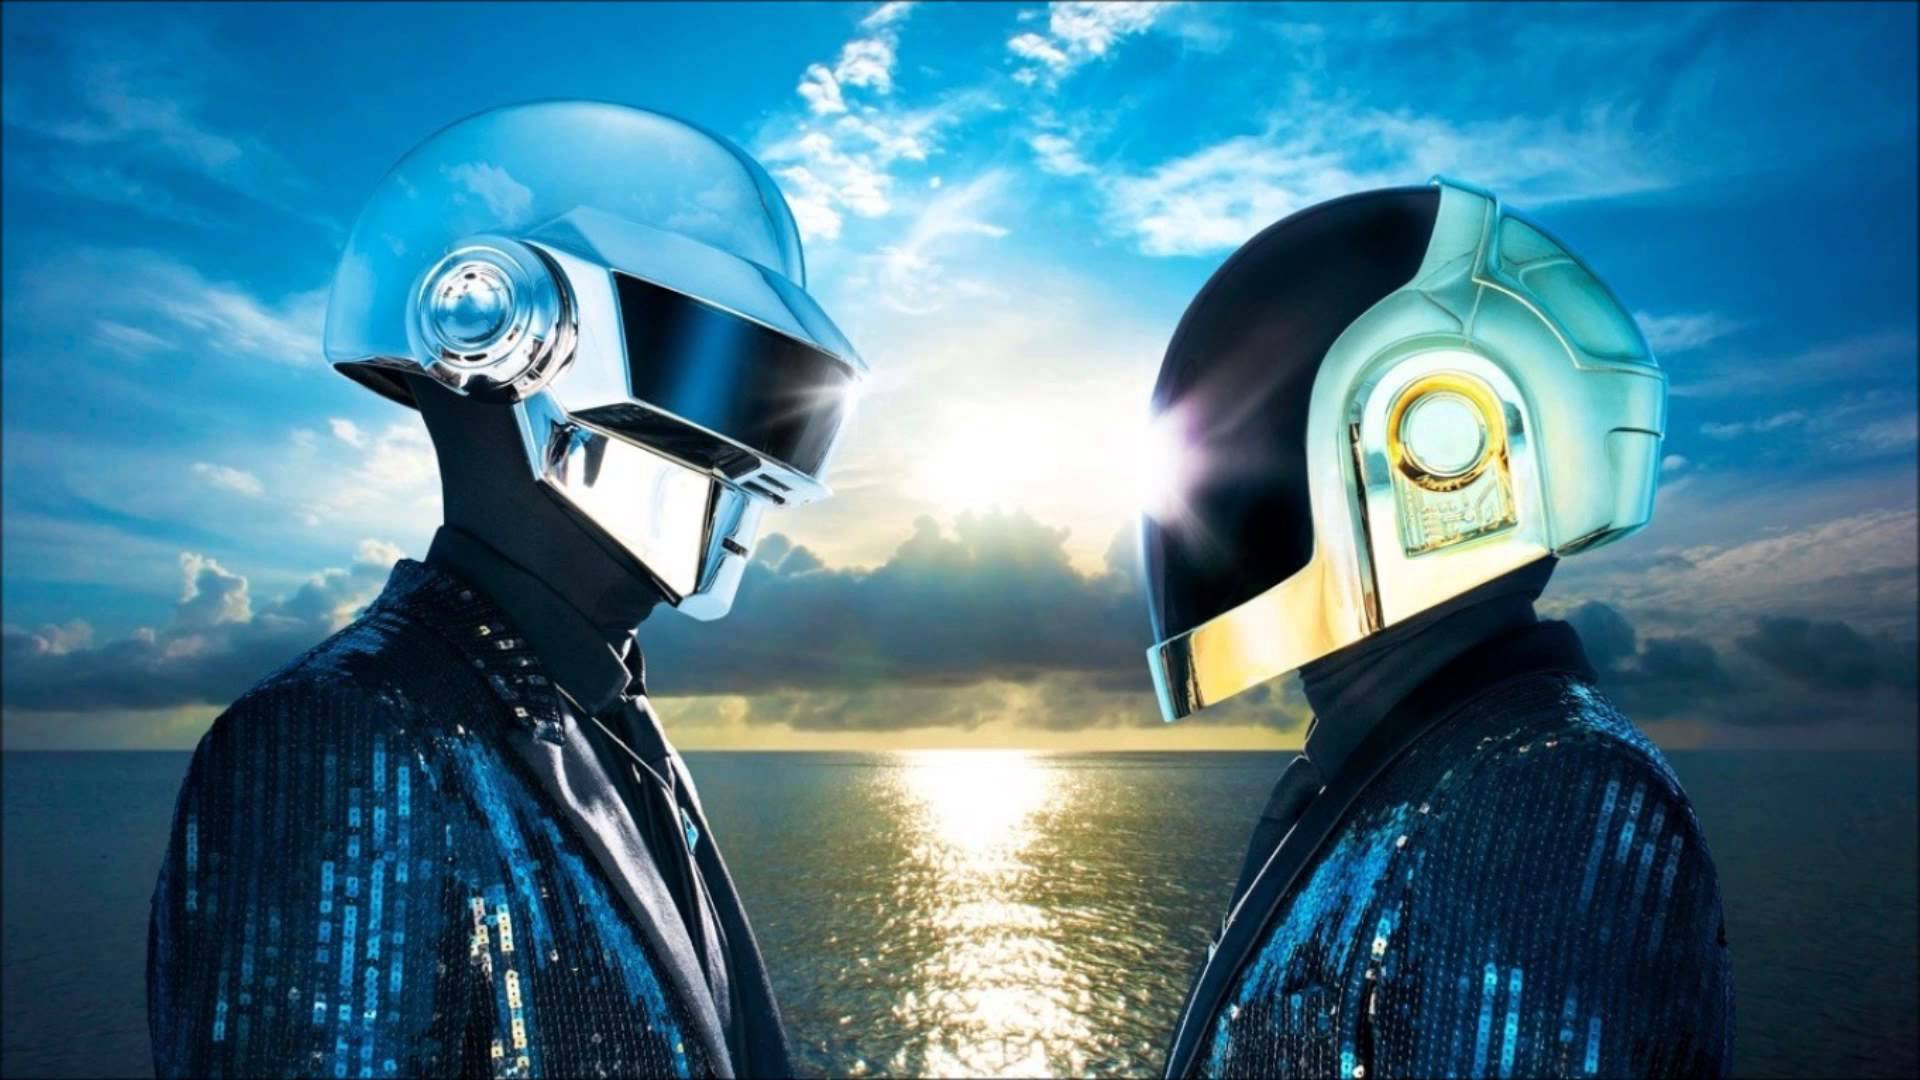 Daft Punk Sample Discovered After 20 Years